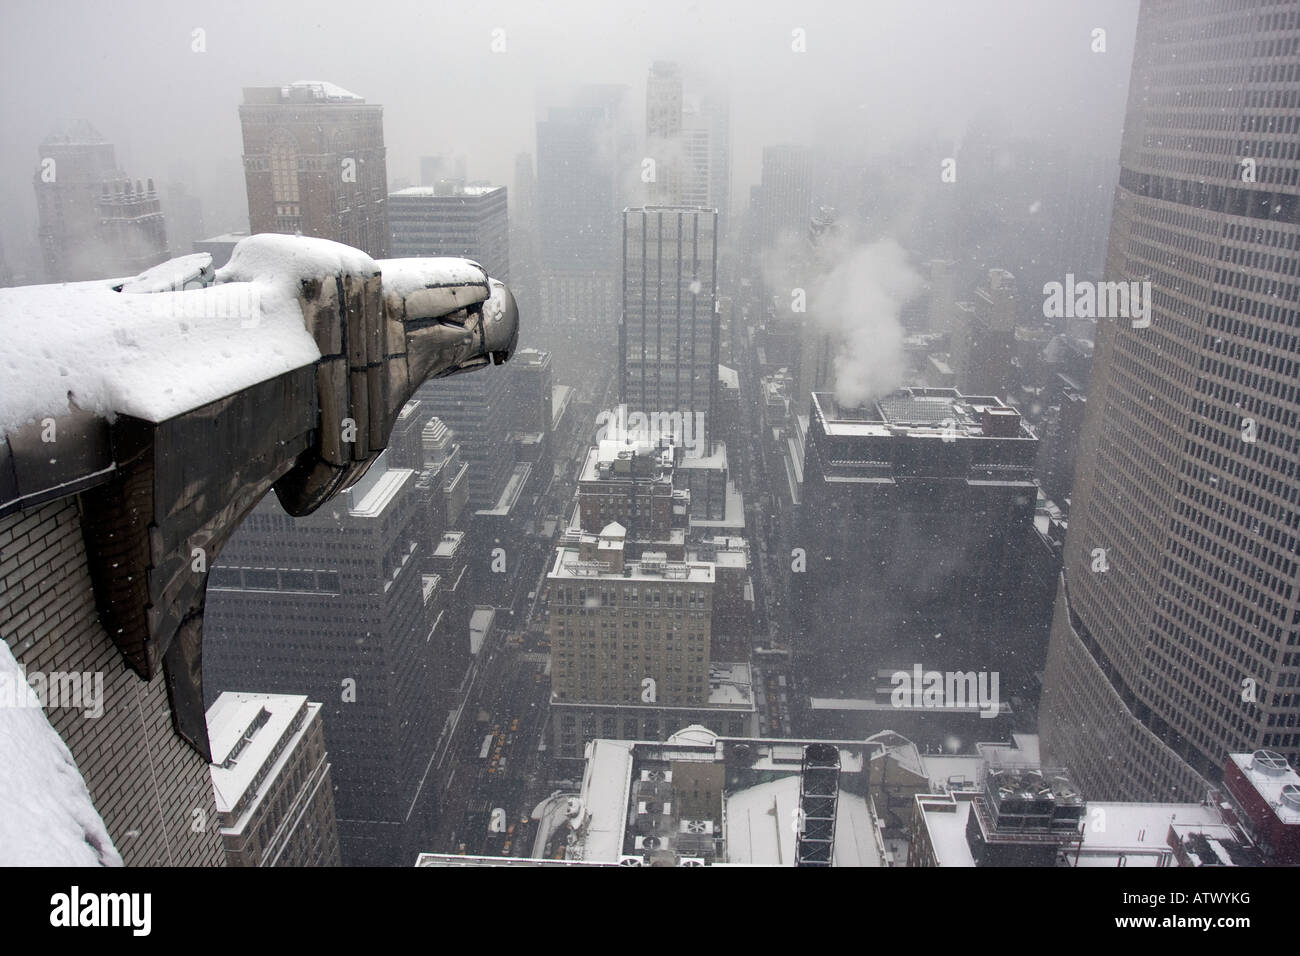 The first big snowfall of the year hits New York City as seen from the Chrysler Building. - Stock Image